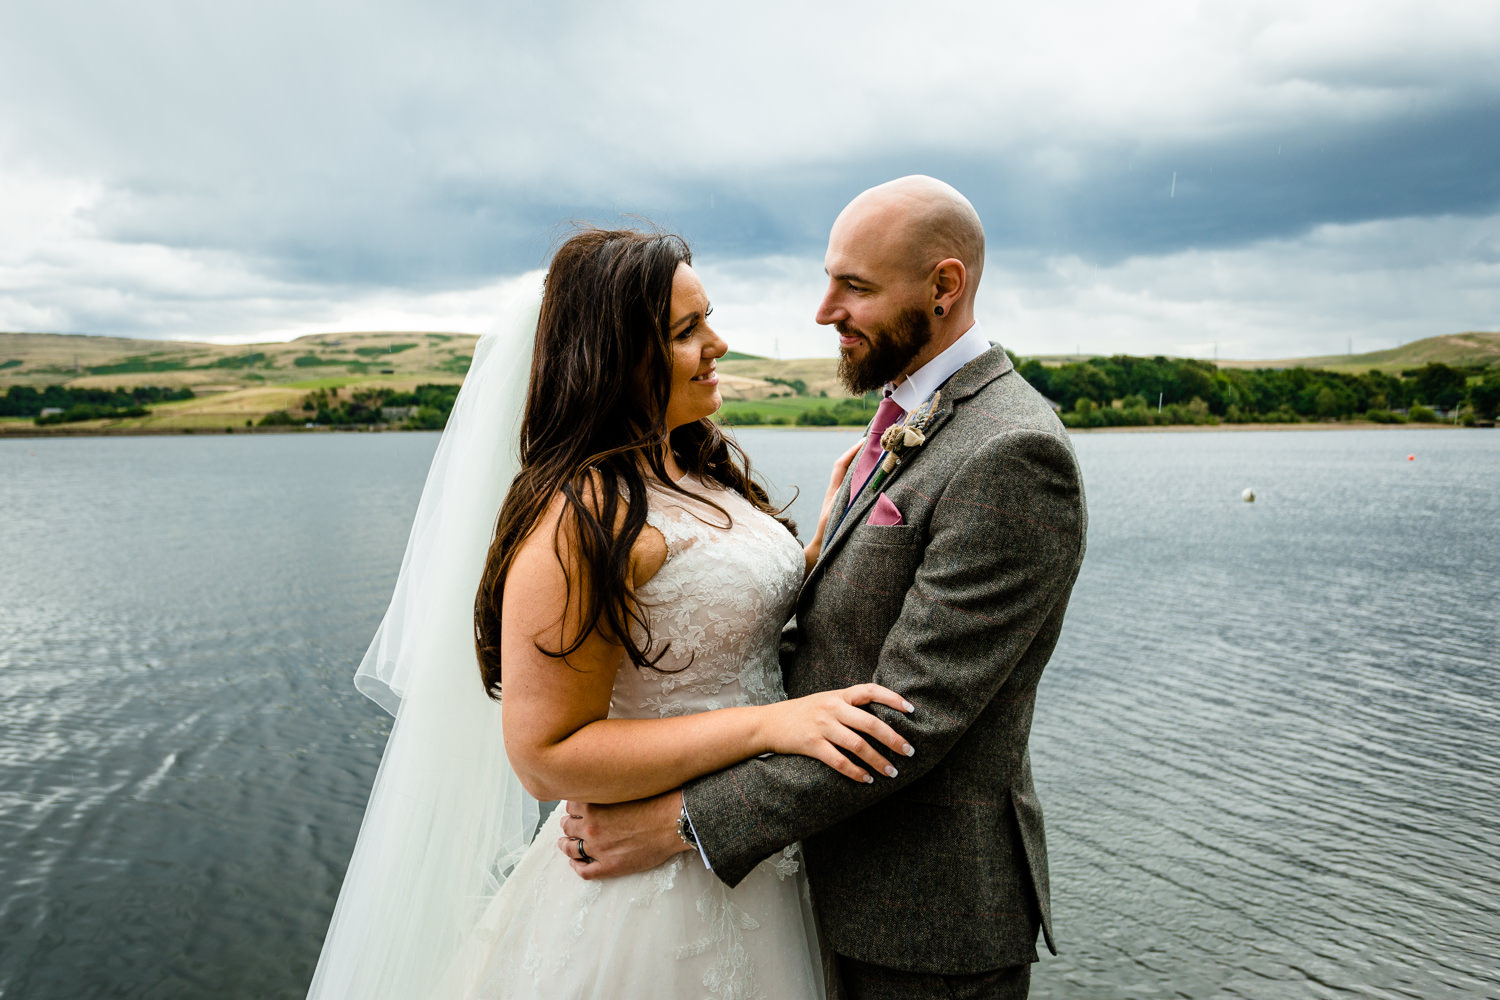 wedding photographer Rochdale, a bride and groom by Hollingworth Lake in the rain